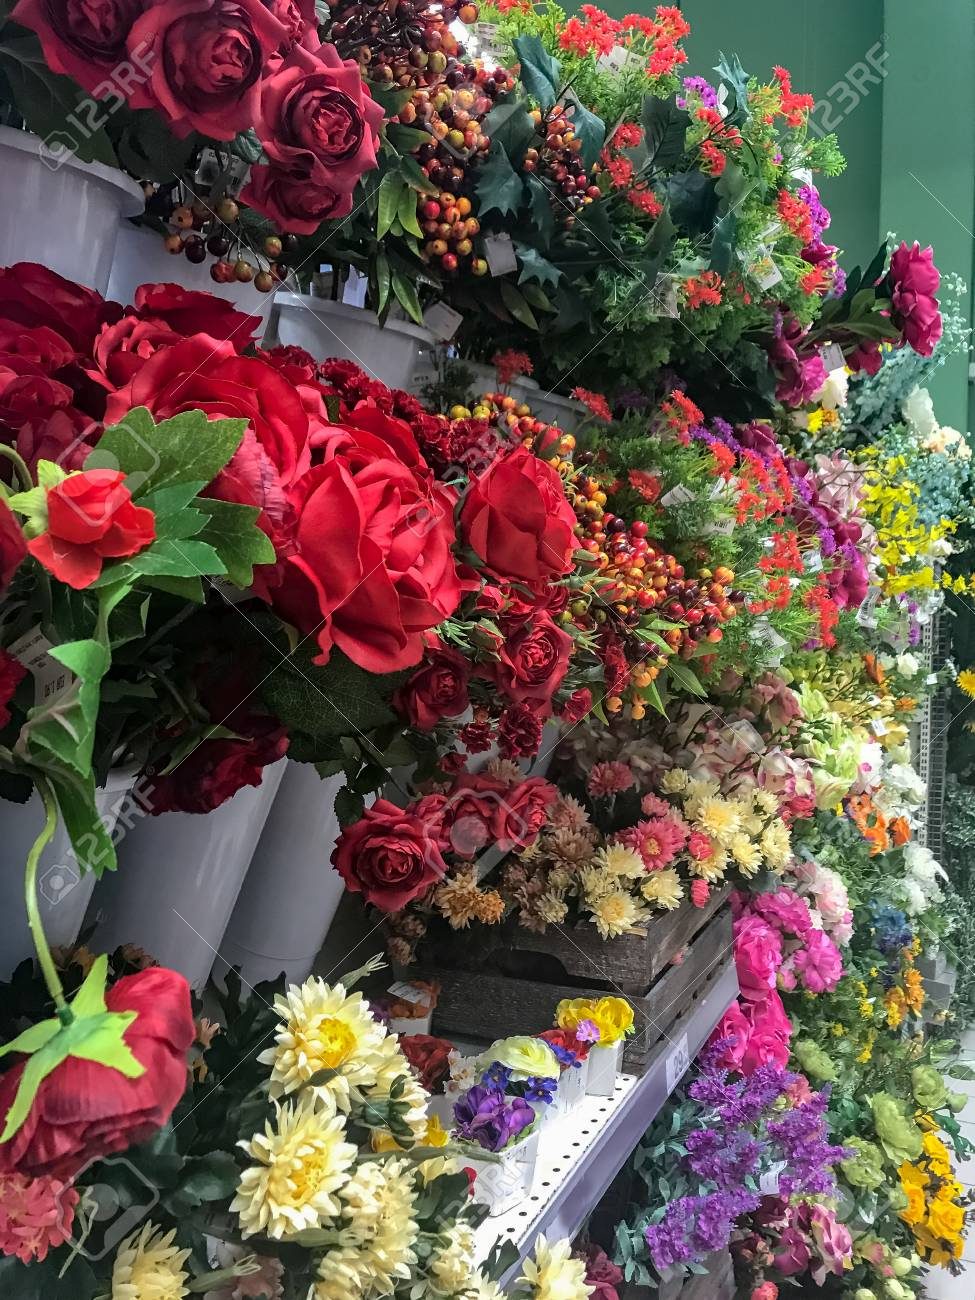 Colored Flowers In Bunches On Supermarket Shelf Stock Photo, Picture ...